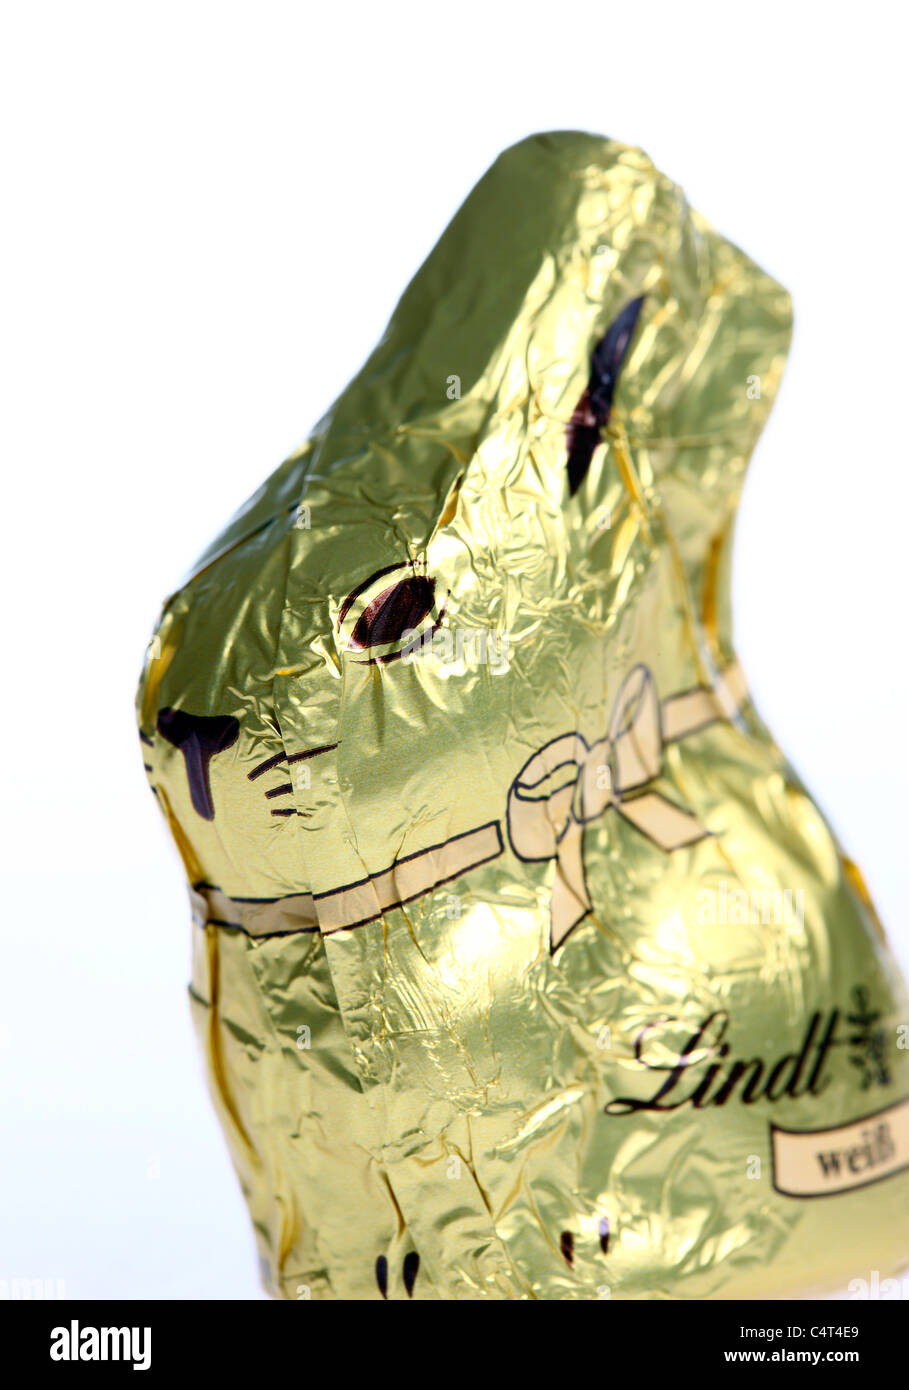 Sweets, chocolate, easter bunny, in packaging, - Stock Image